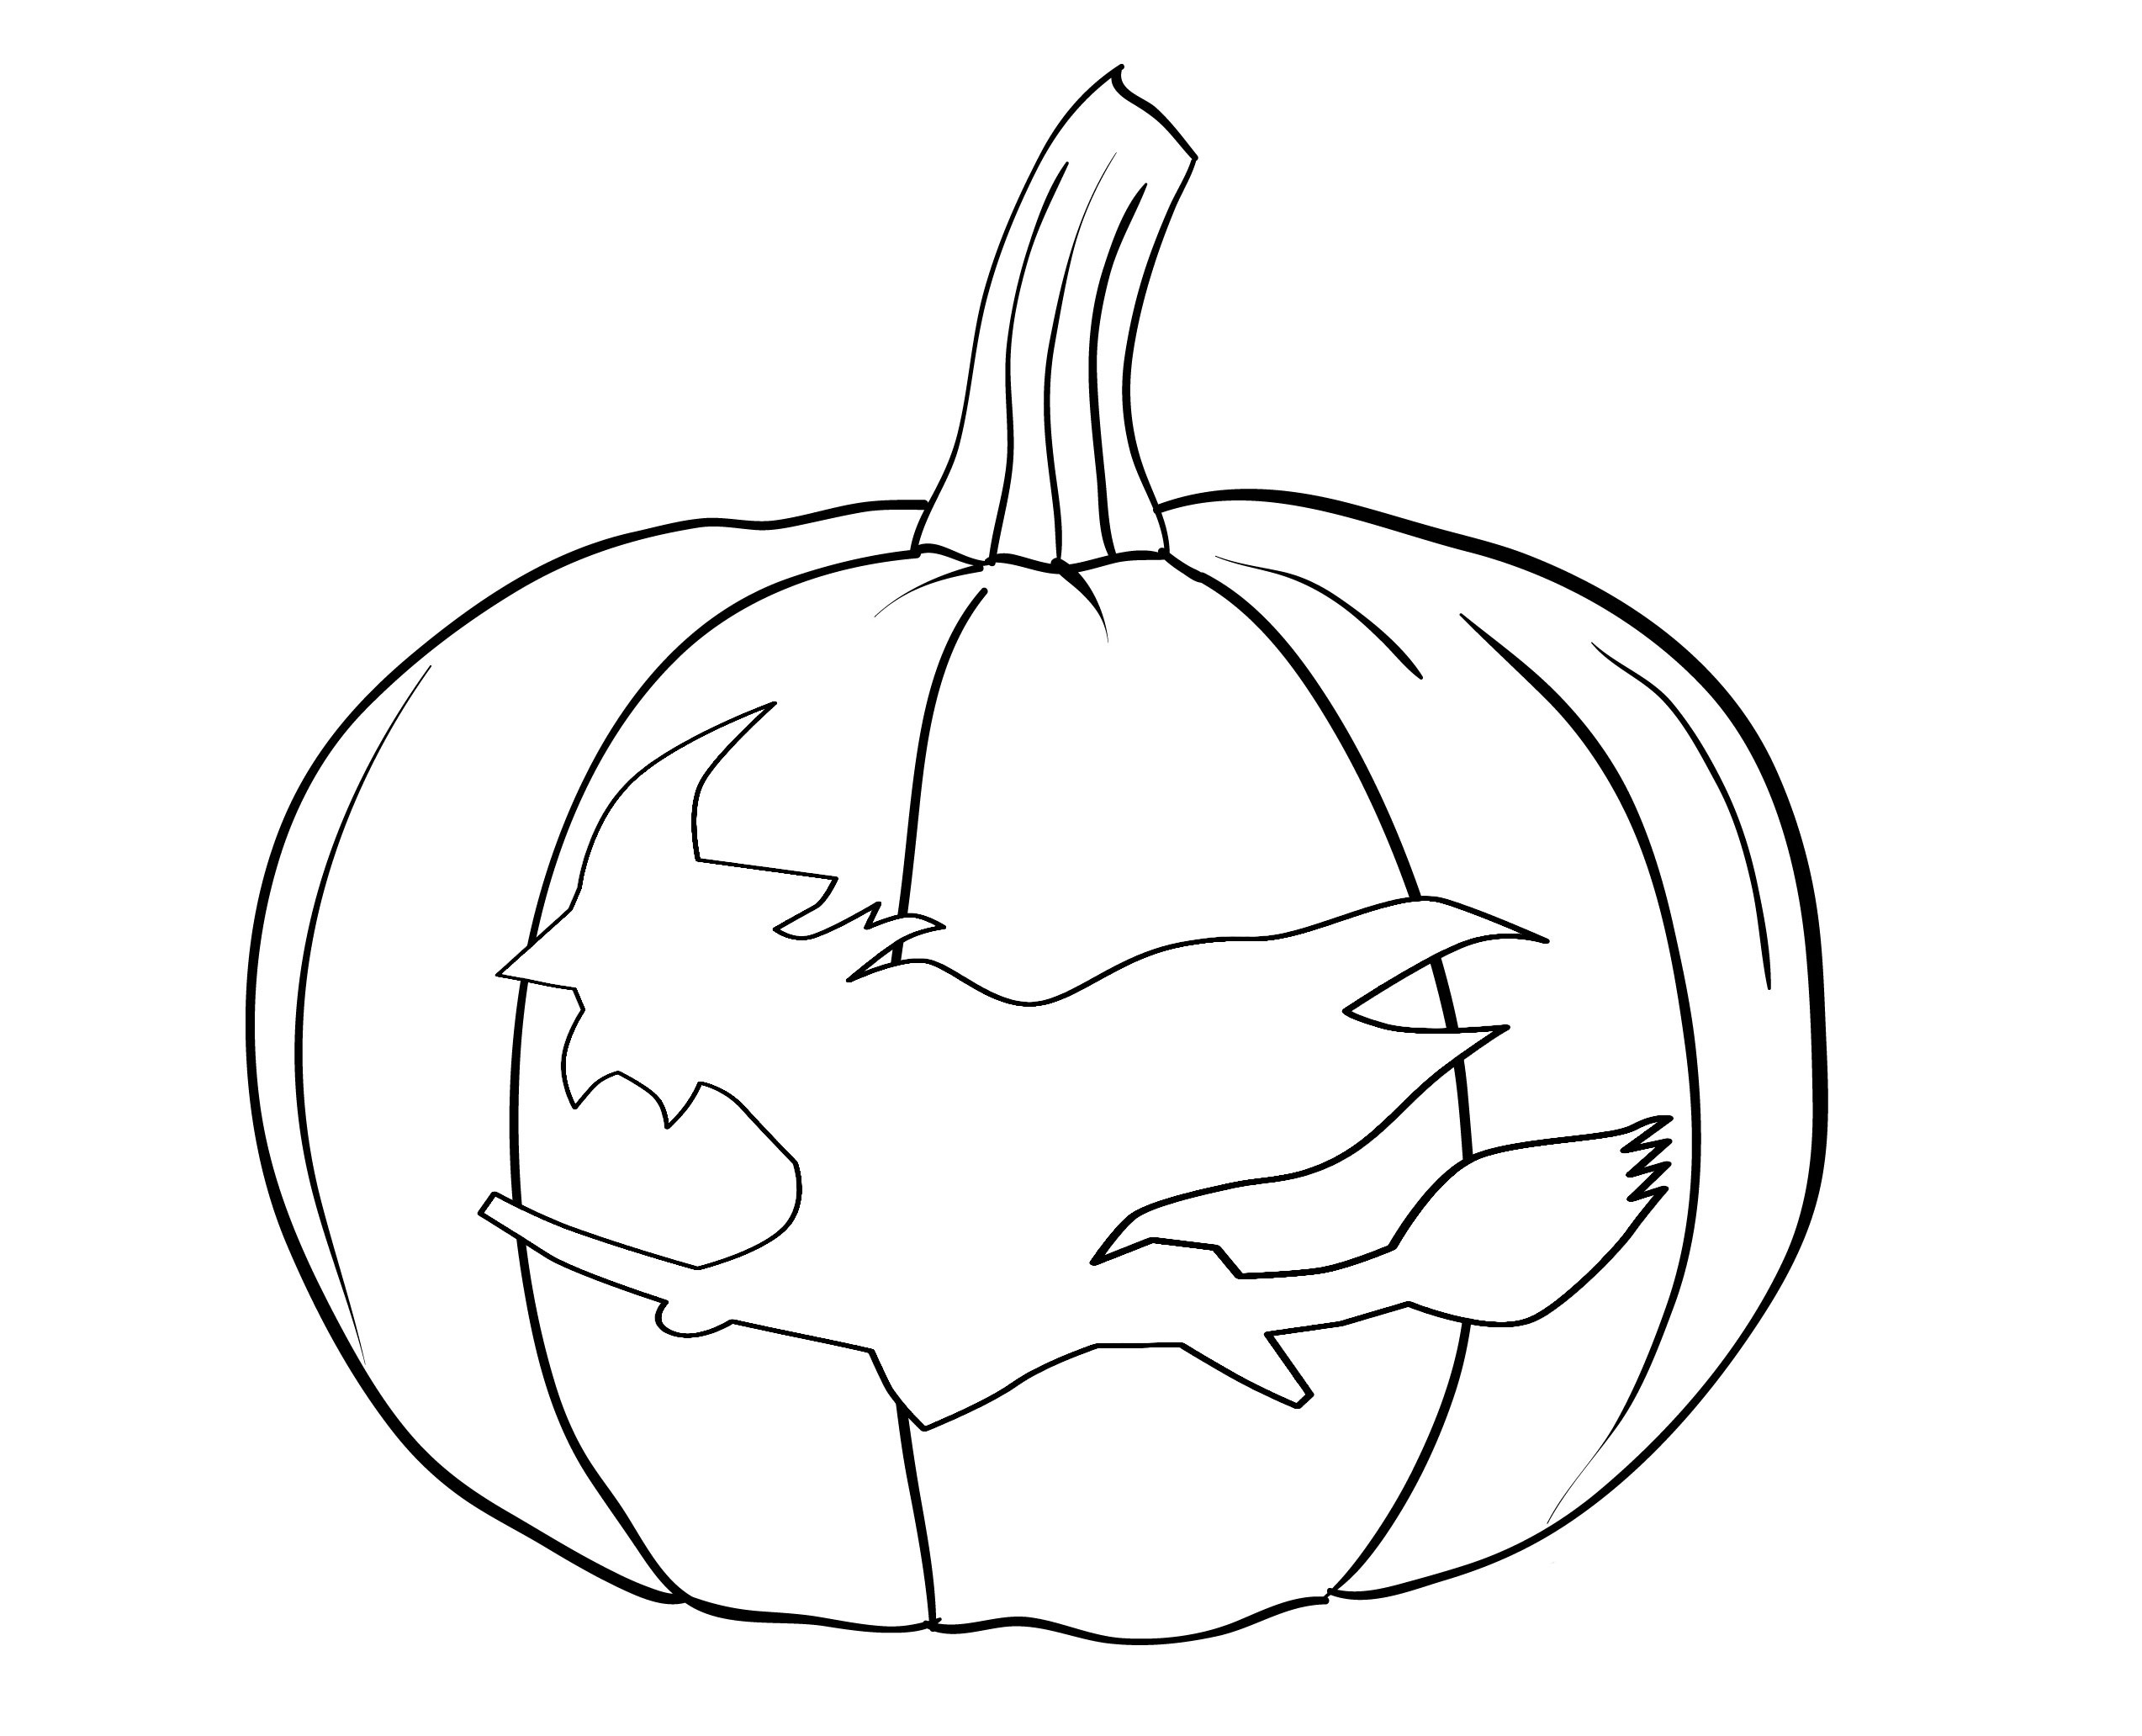 coloring page of a pumpkin free printable pumpkin coloring pages for kids coloring pumpkin page a of